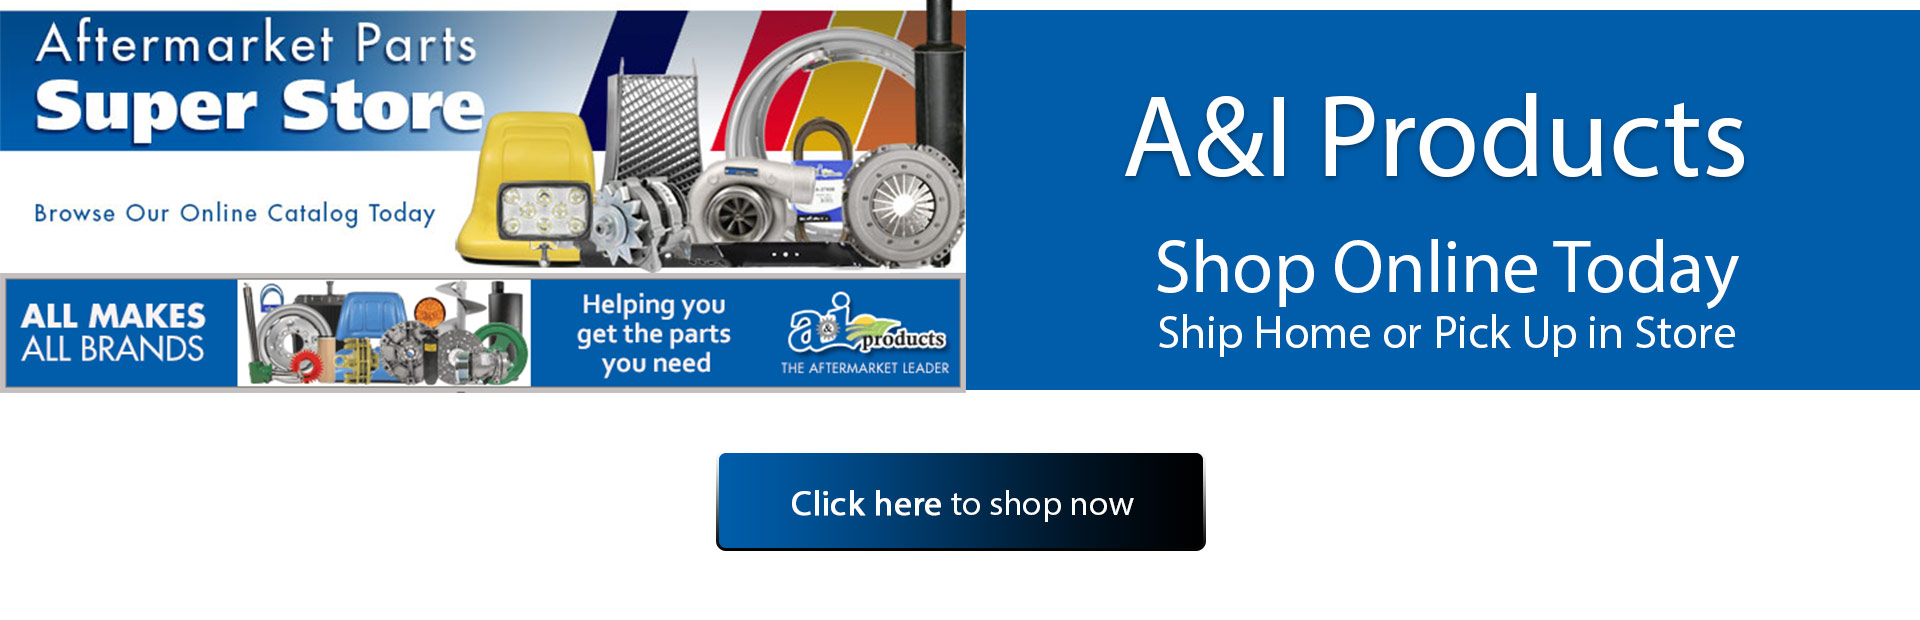 A&I Products: Shop online today! Click here to show now.